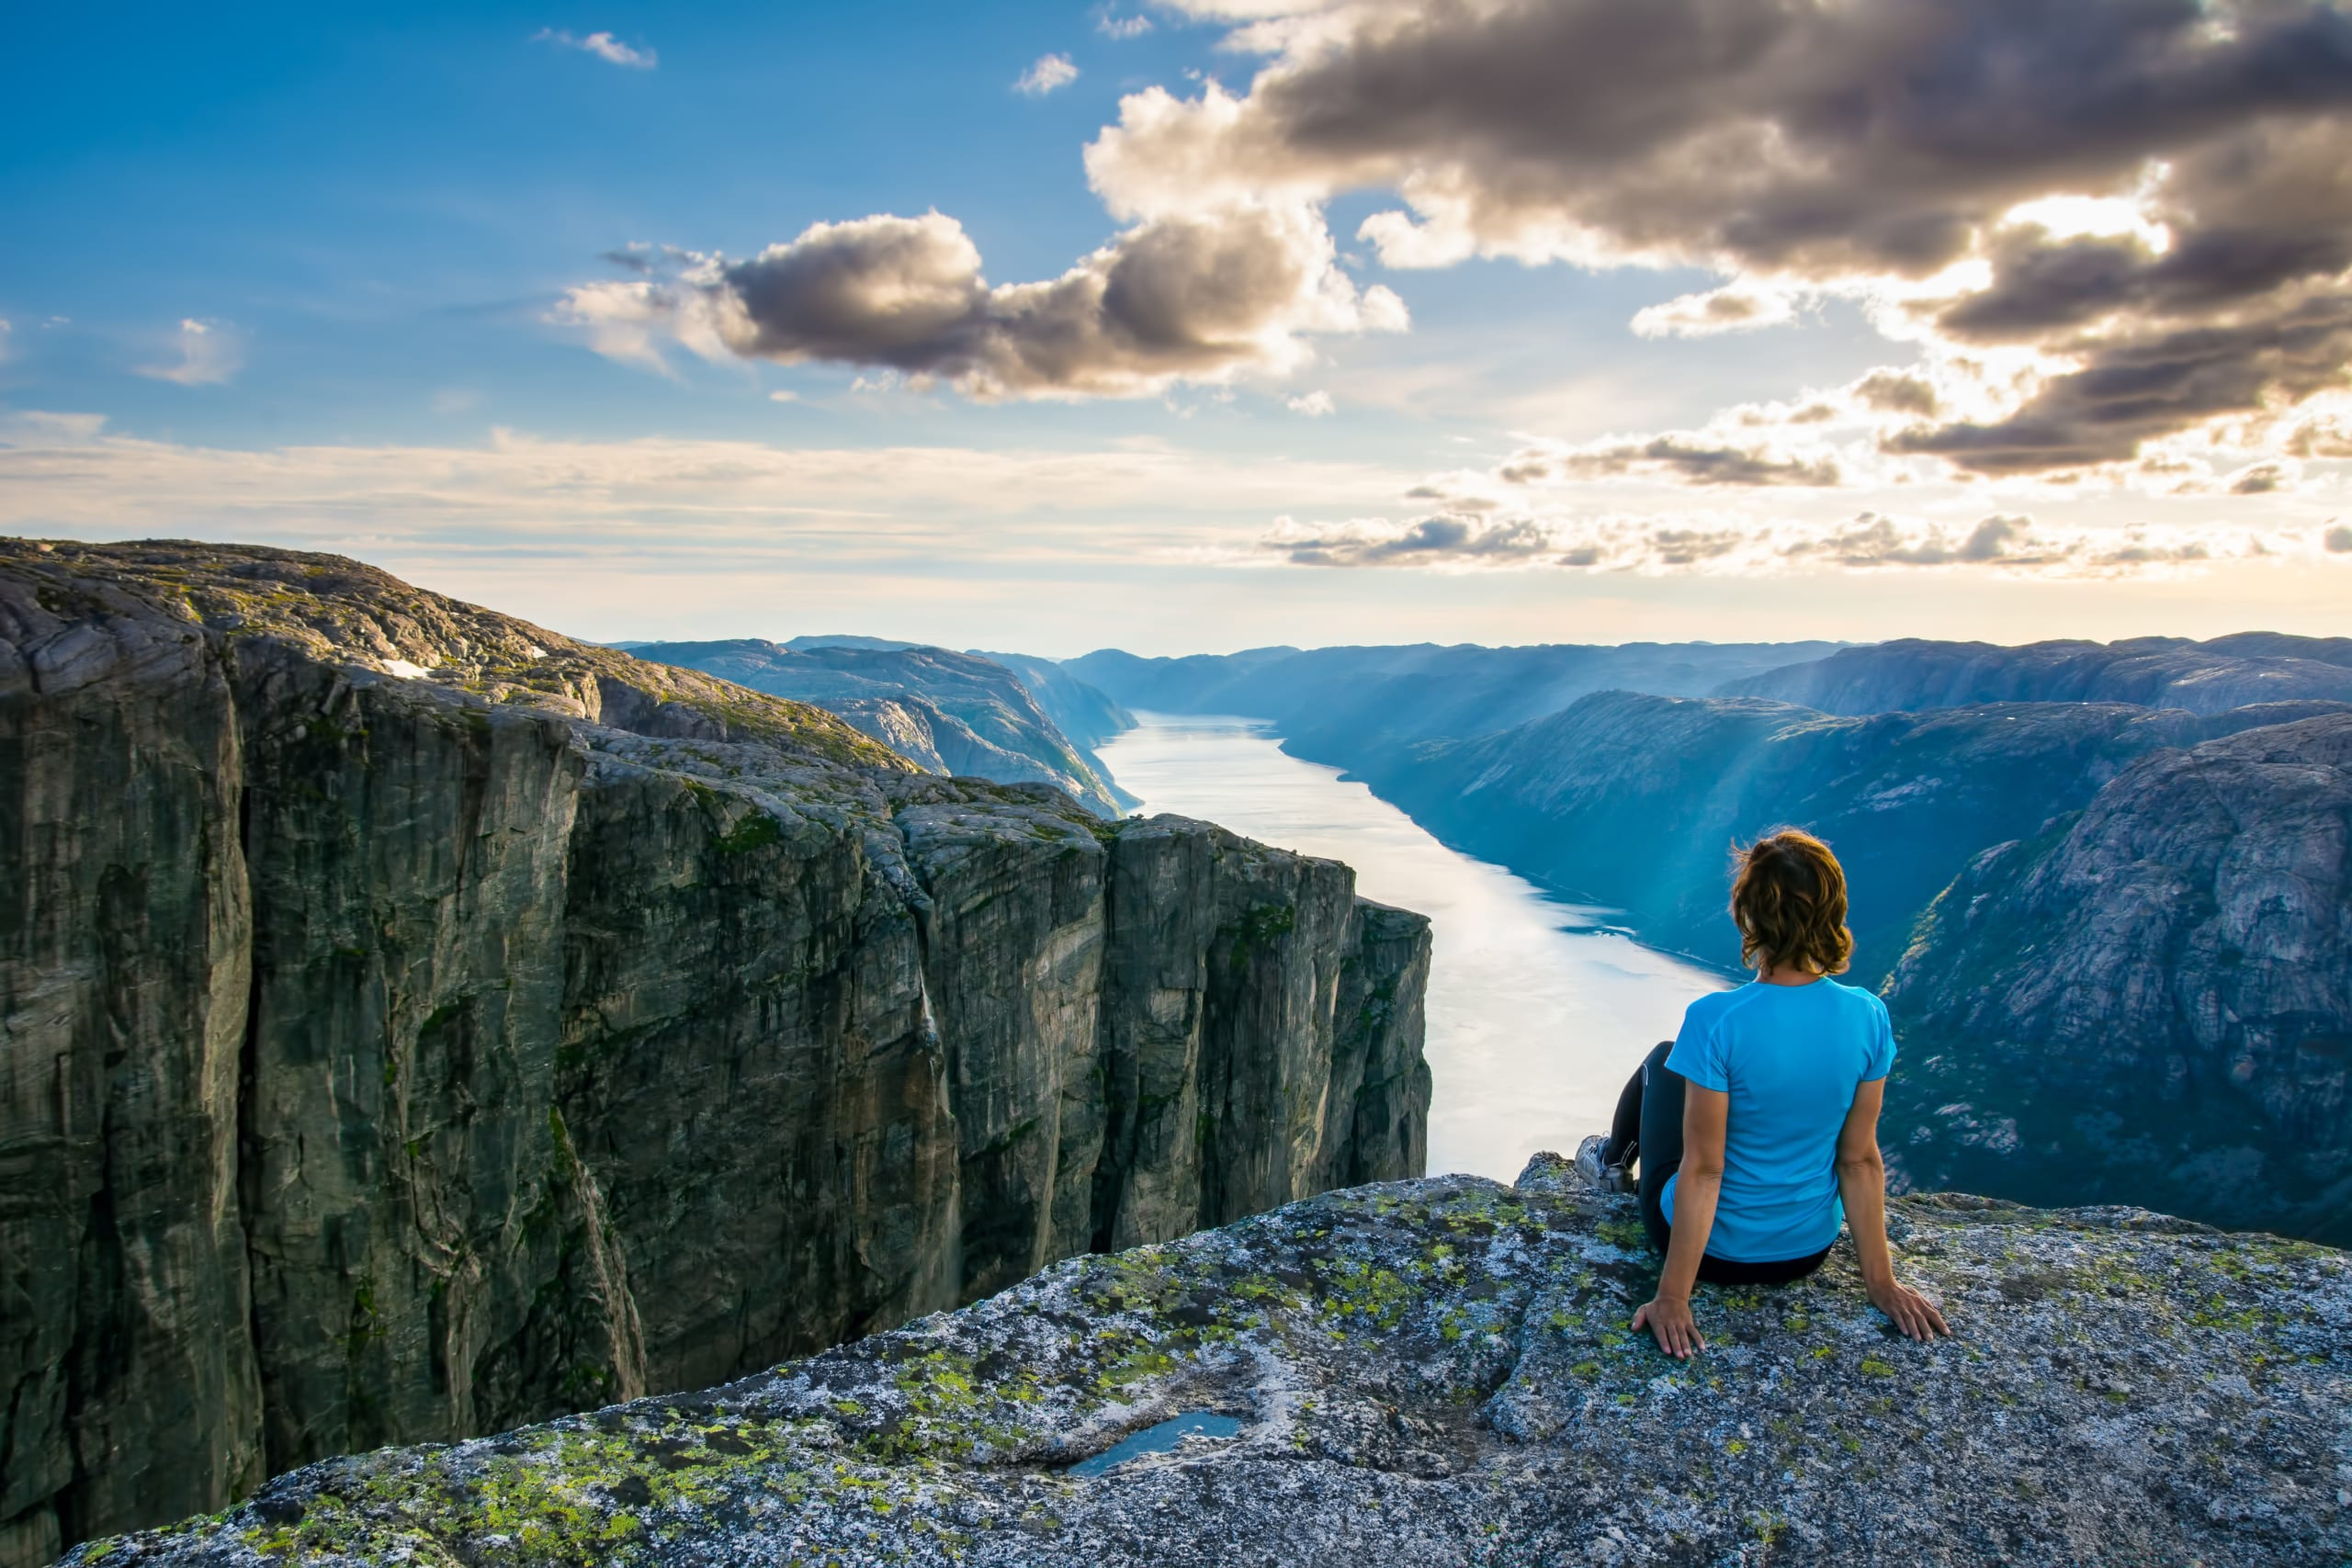 Hiker on the cliffs of Kjerag